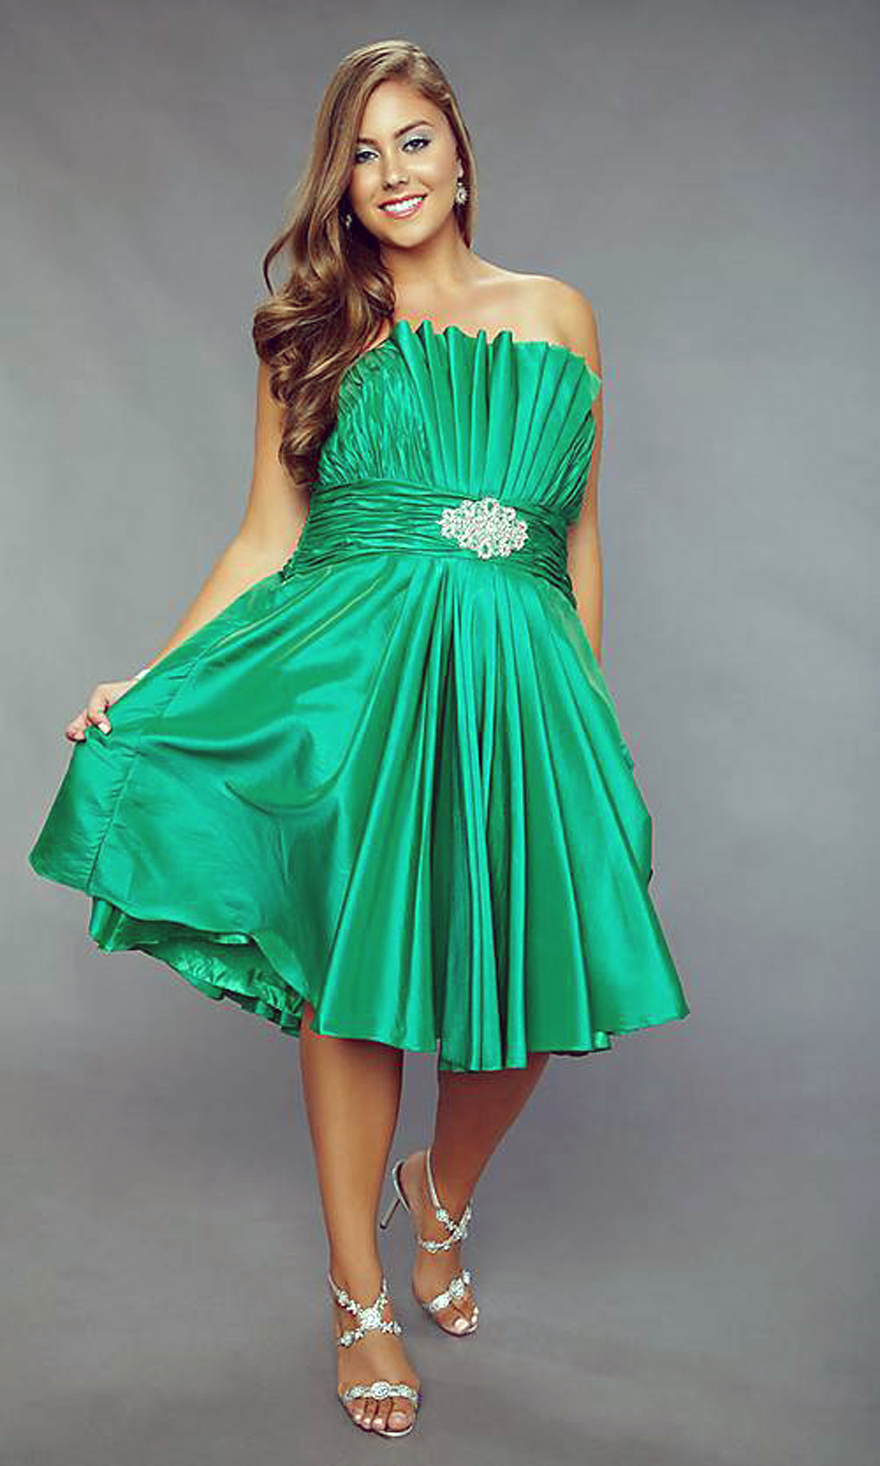 Green Short Prom Dress Maxi - Inofashionstyle.com